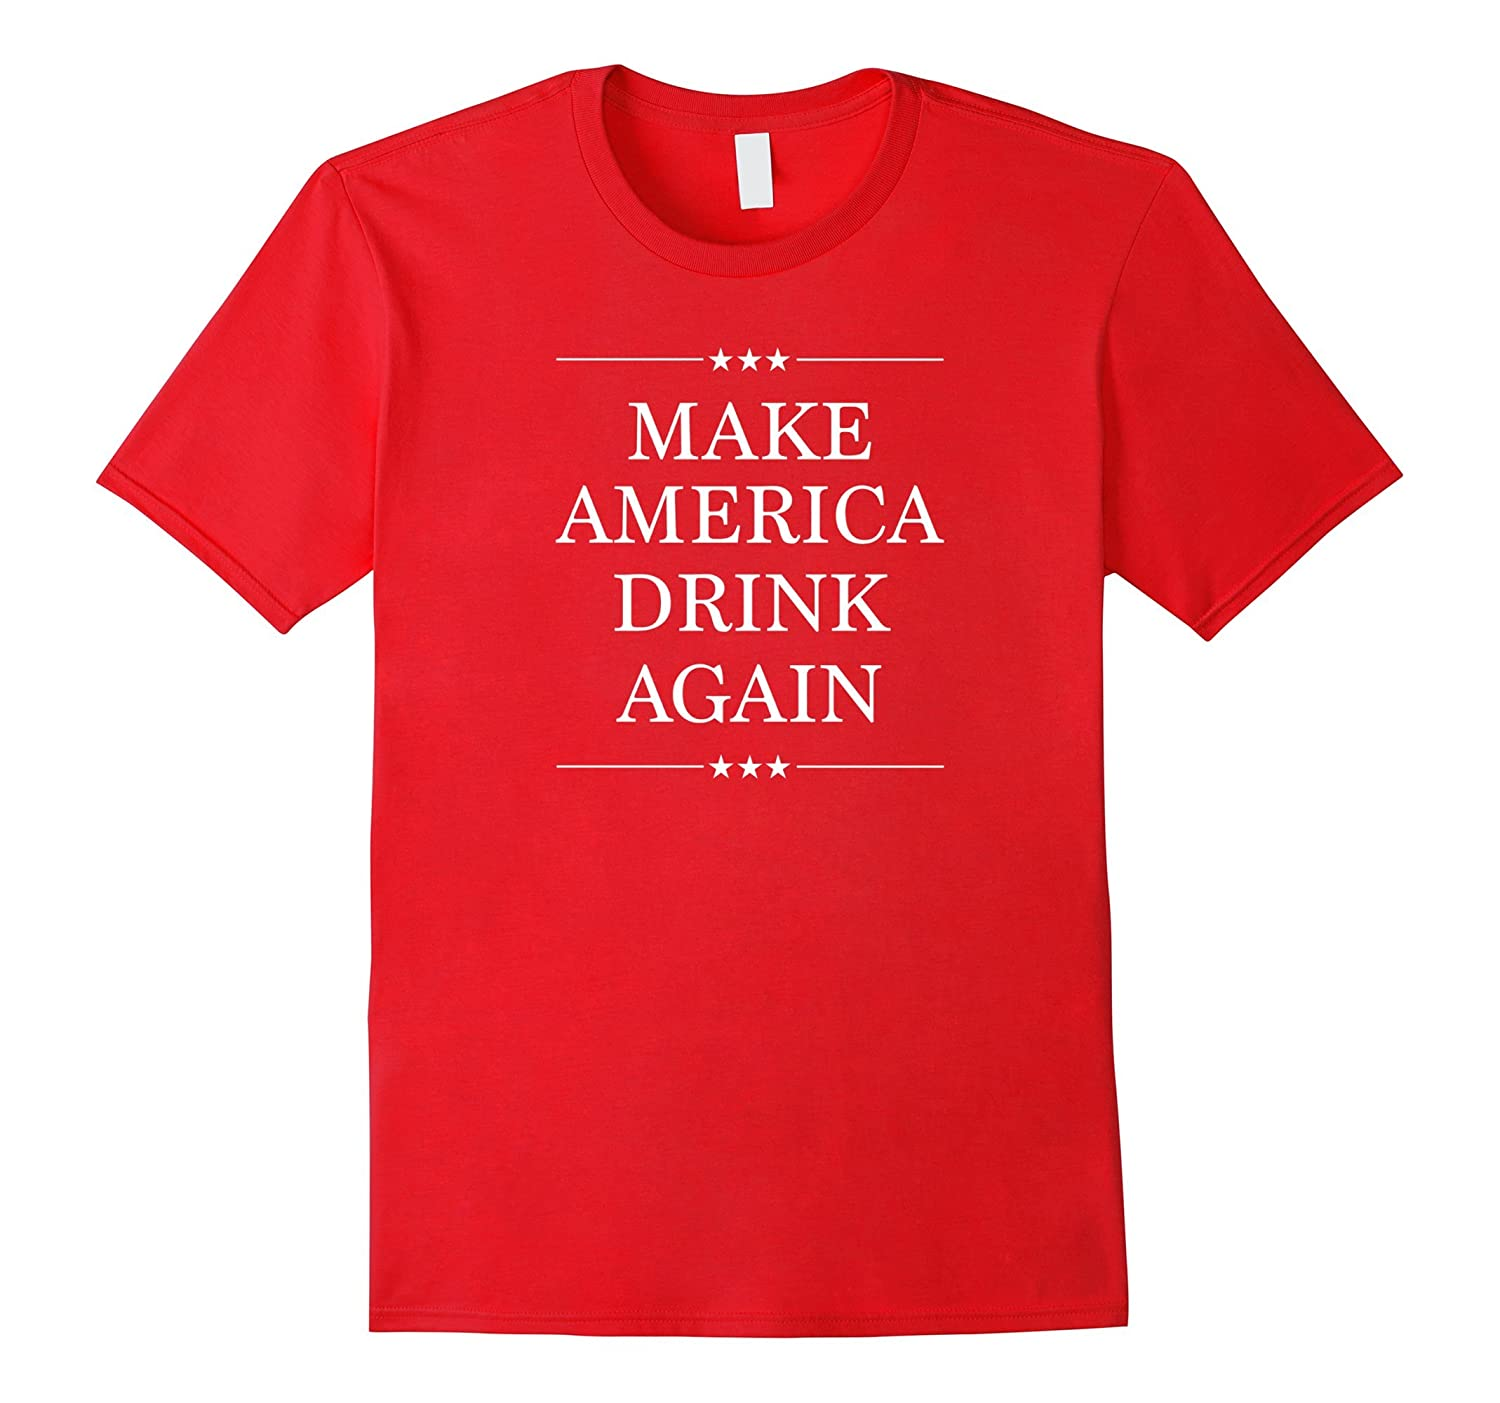 Make America Drink Again Shirt - Funny Tee for 4th of July-Vaci